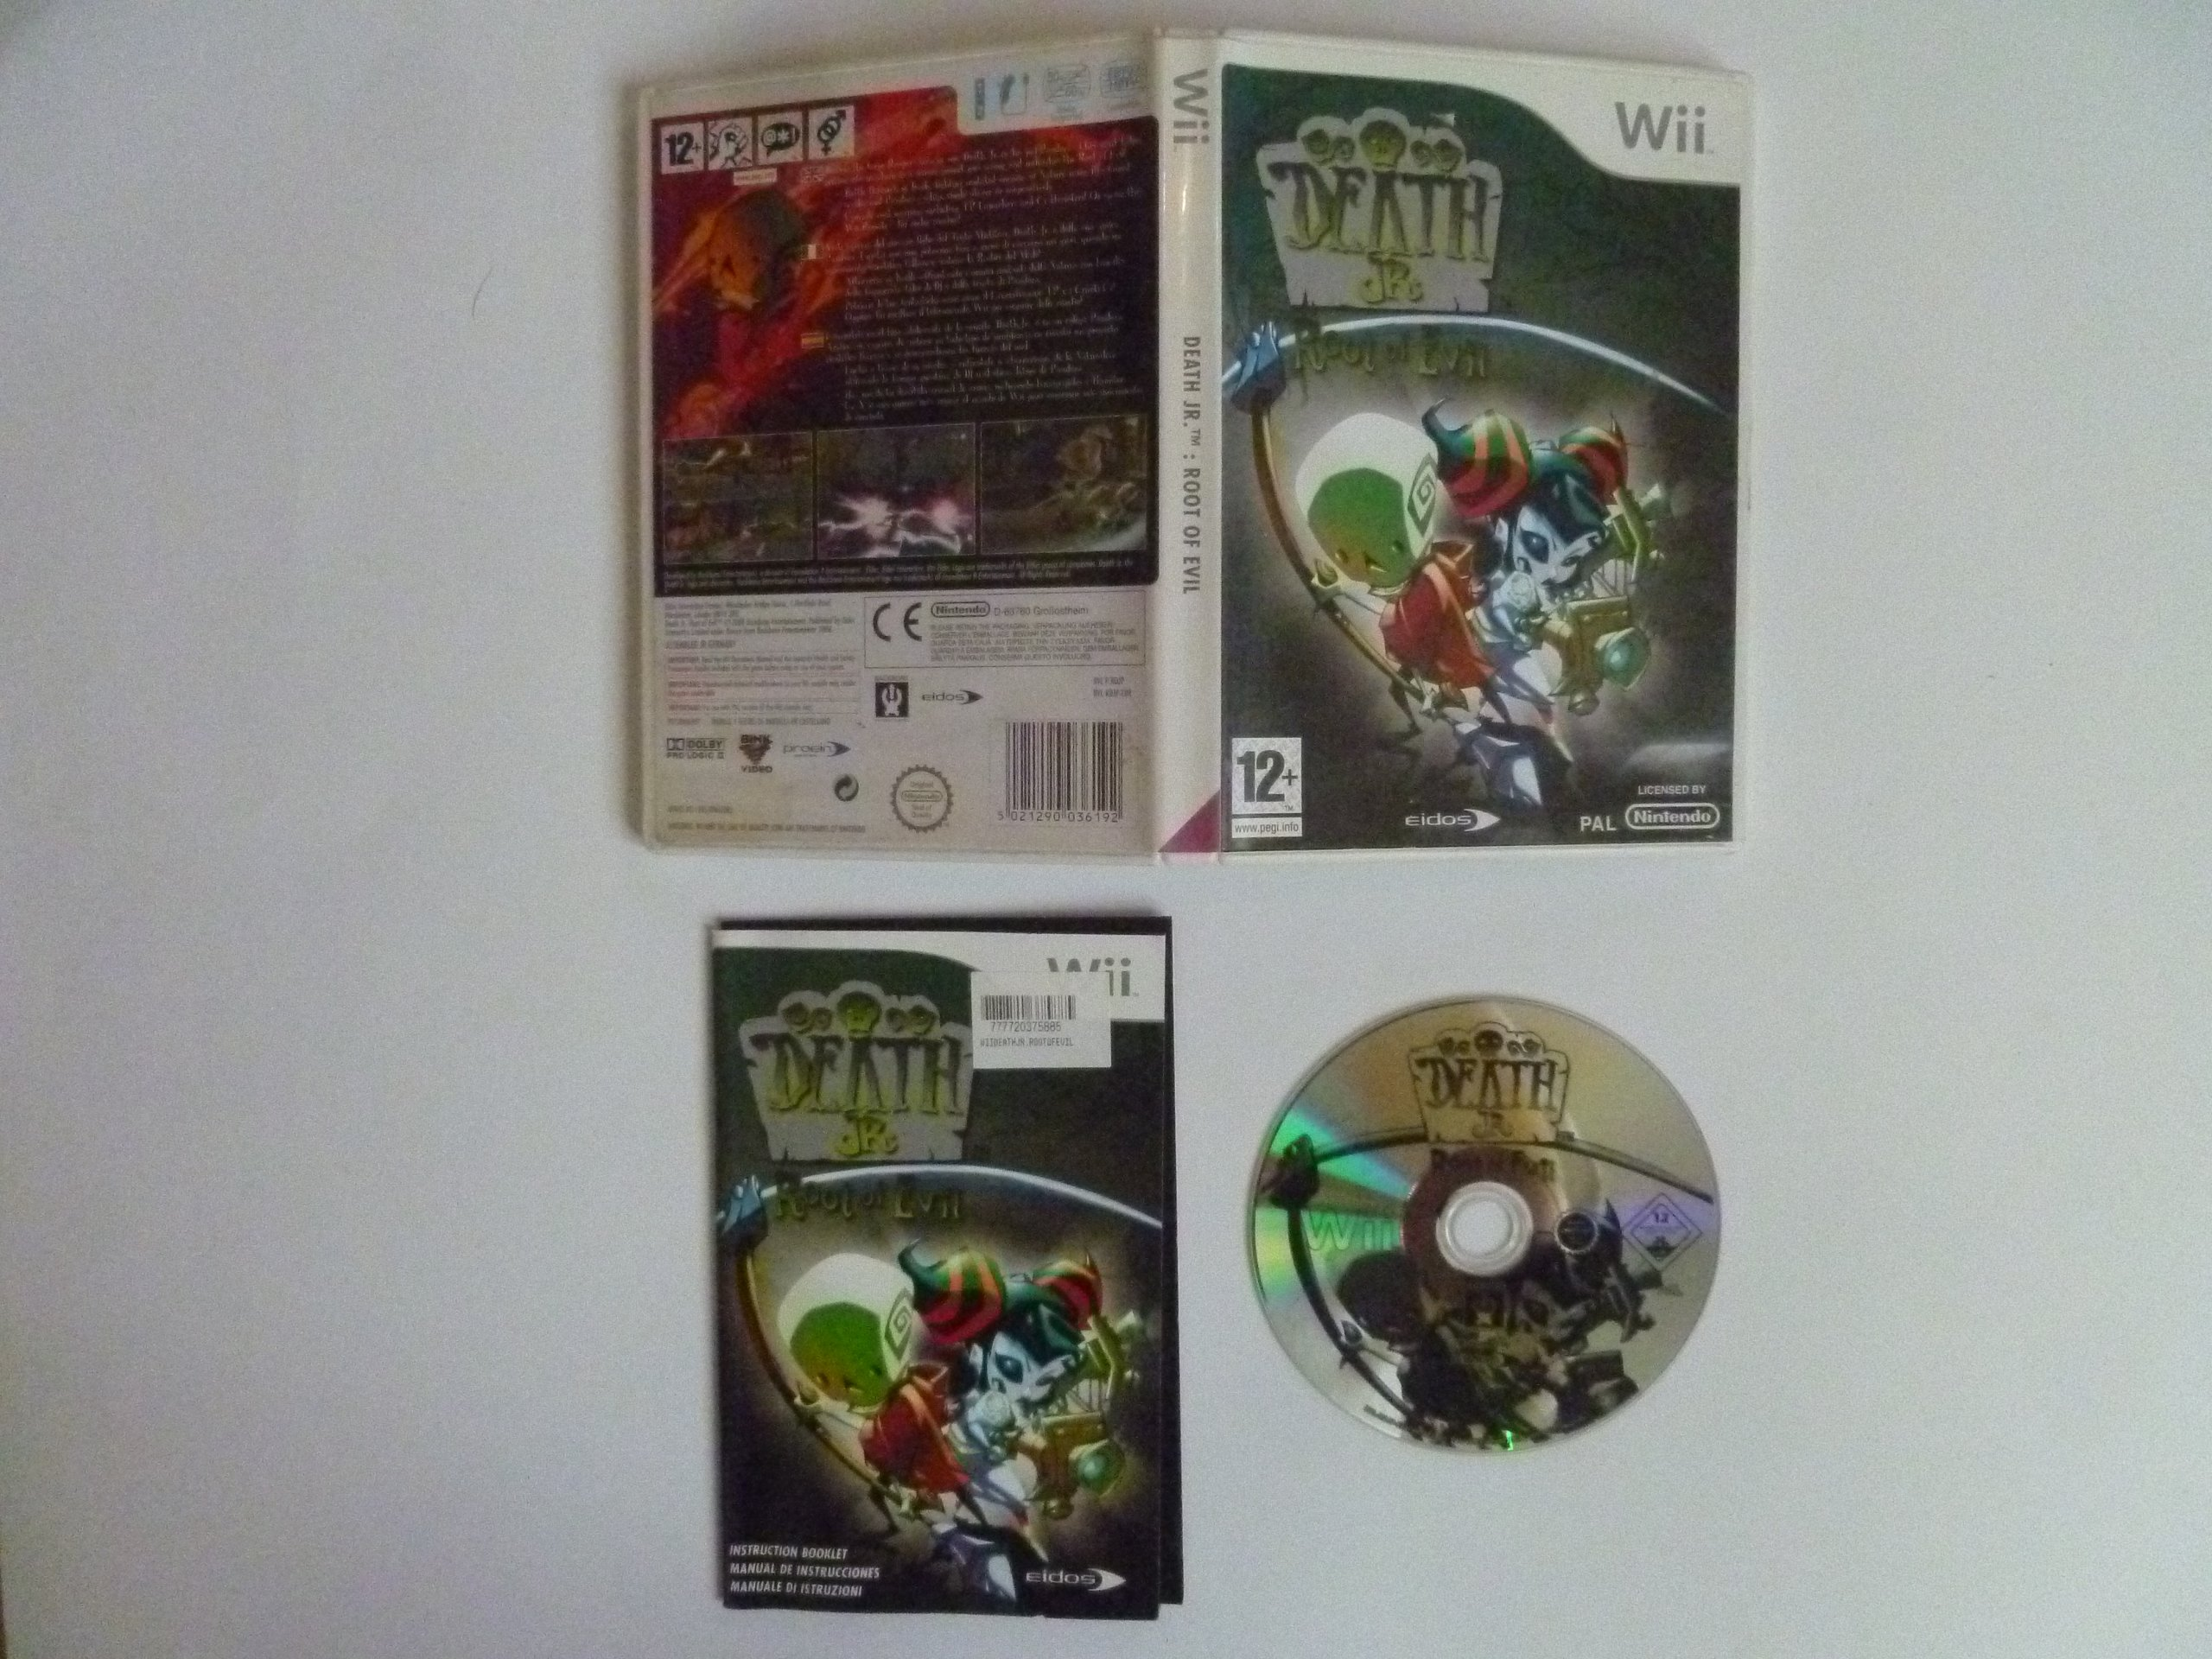 death jr ii root of evil wii